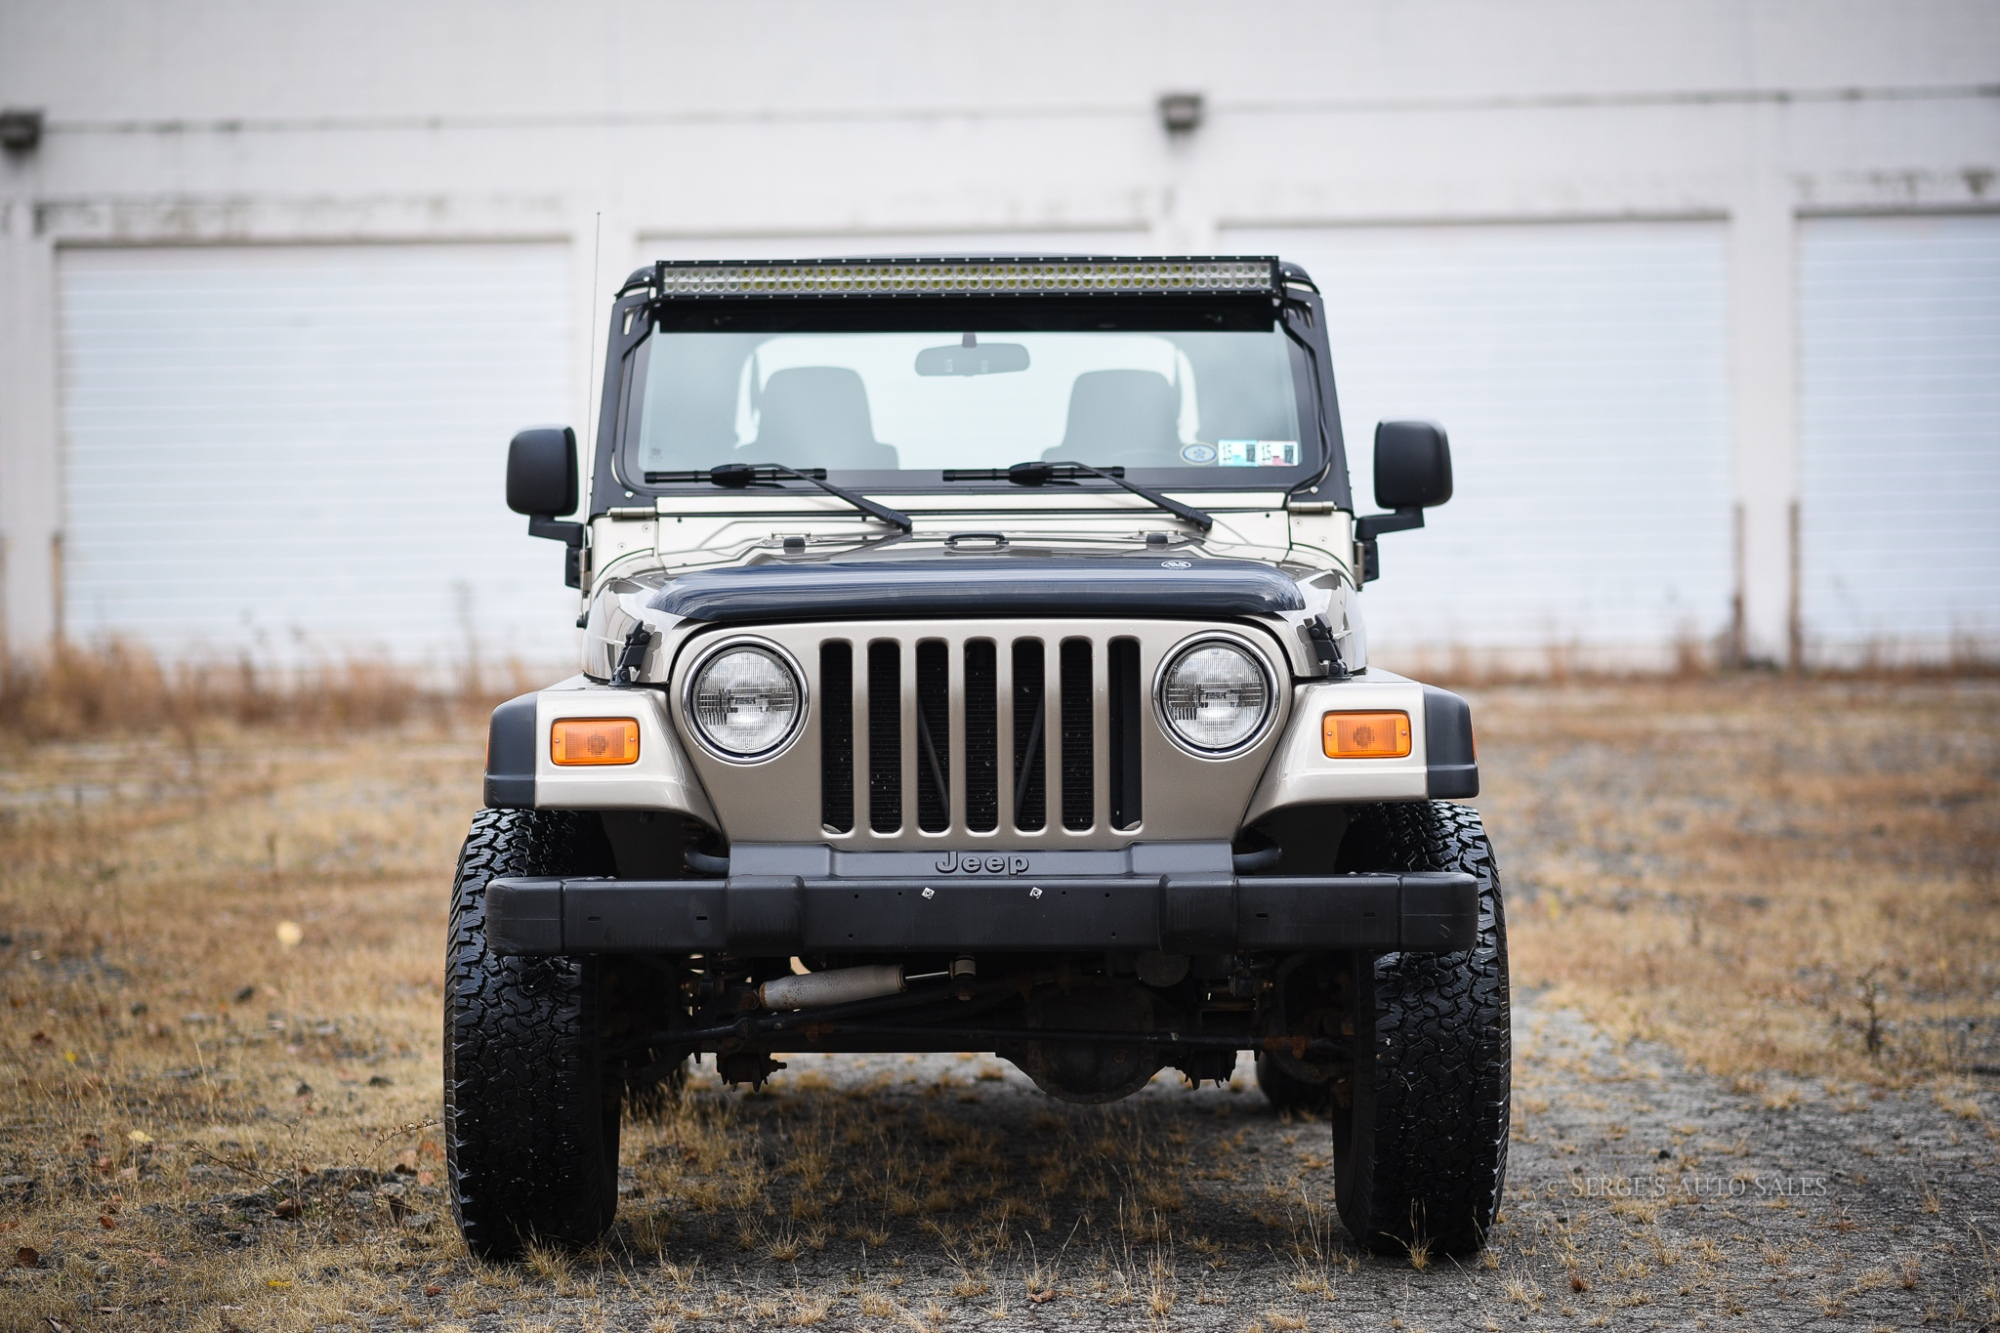 2004 Wrangler For Sale – Serges Auto Sales of northeast pa